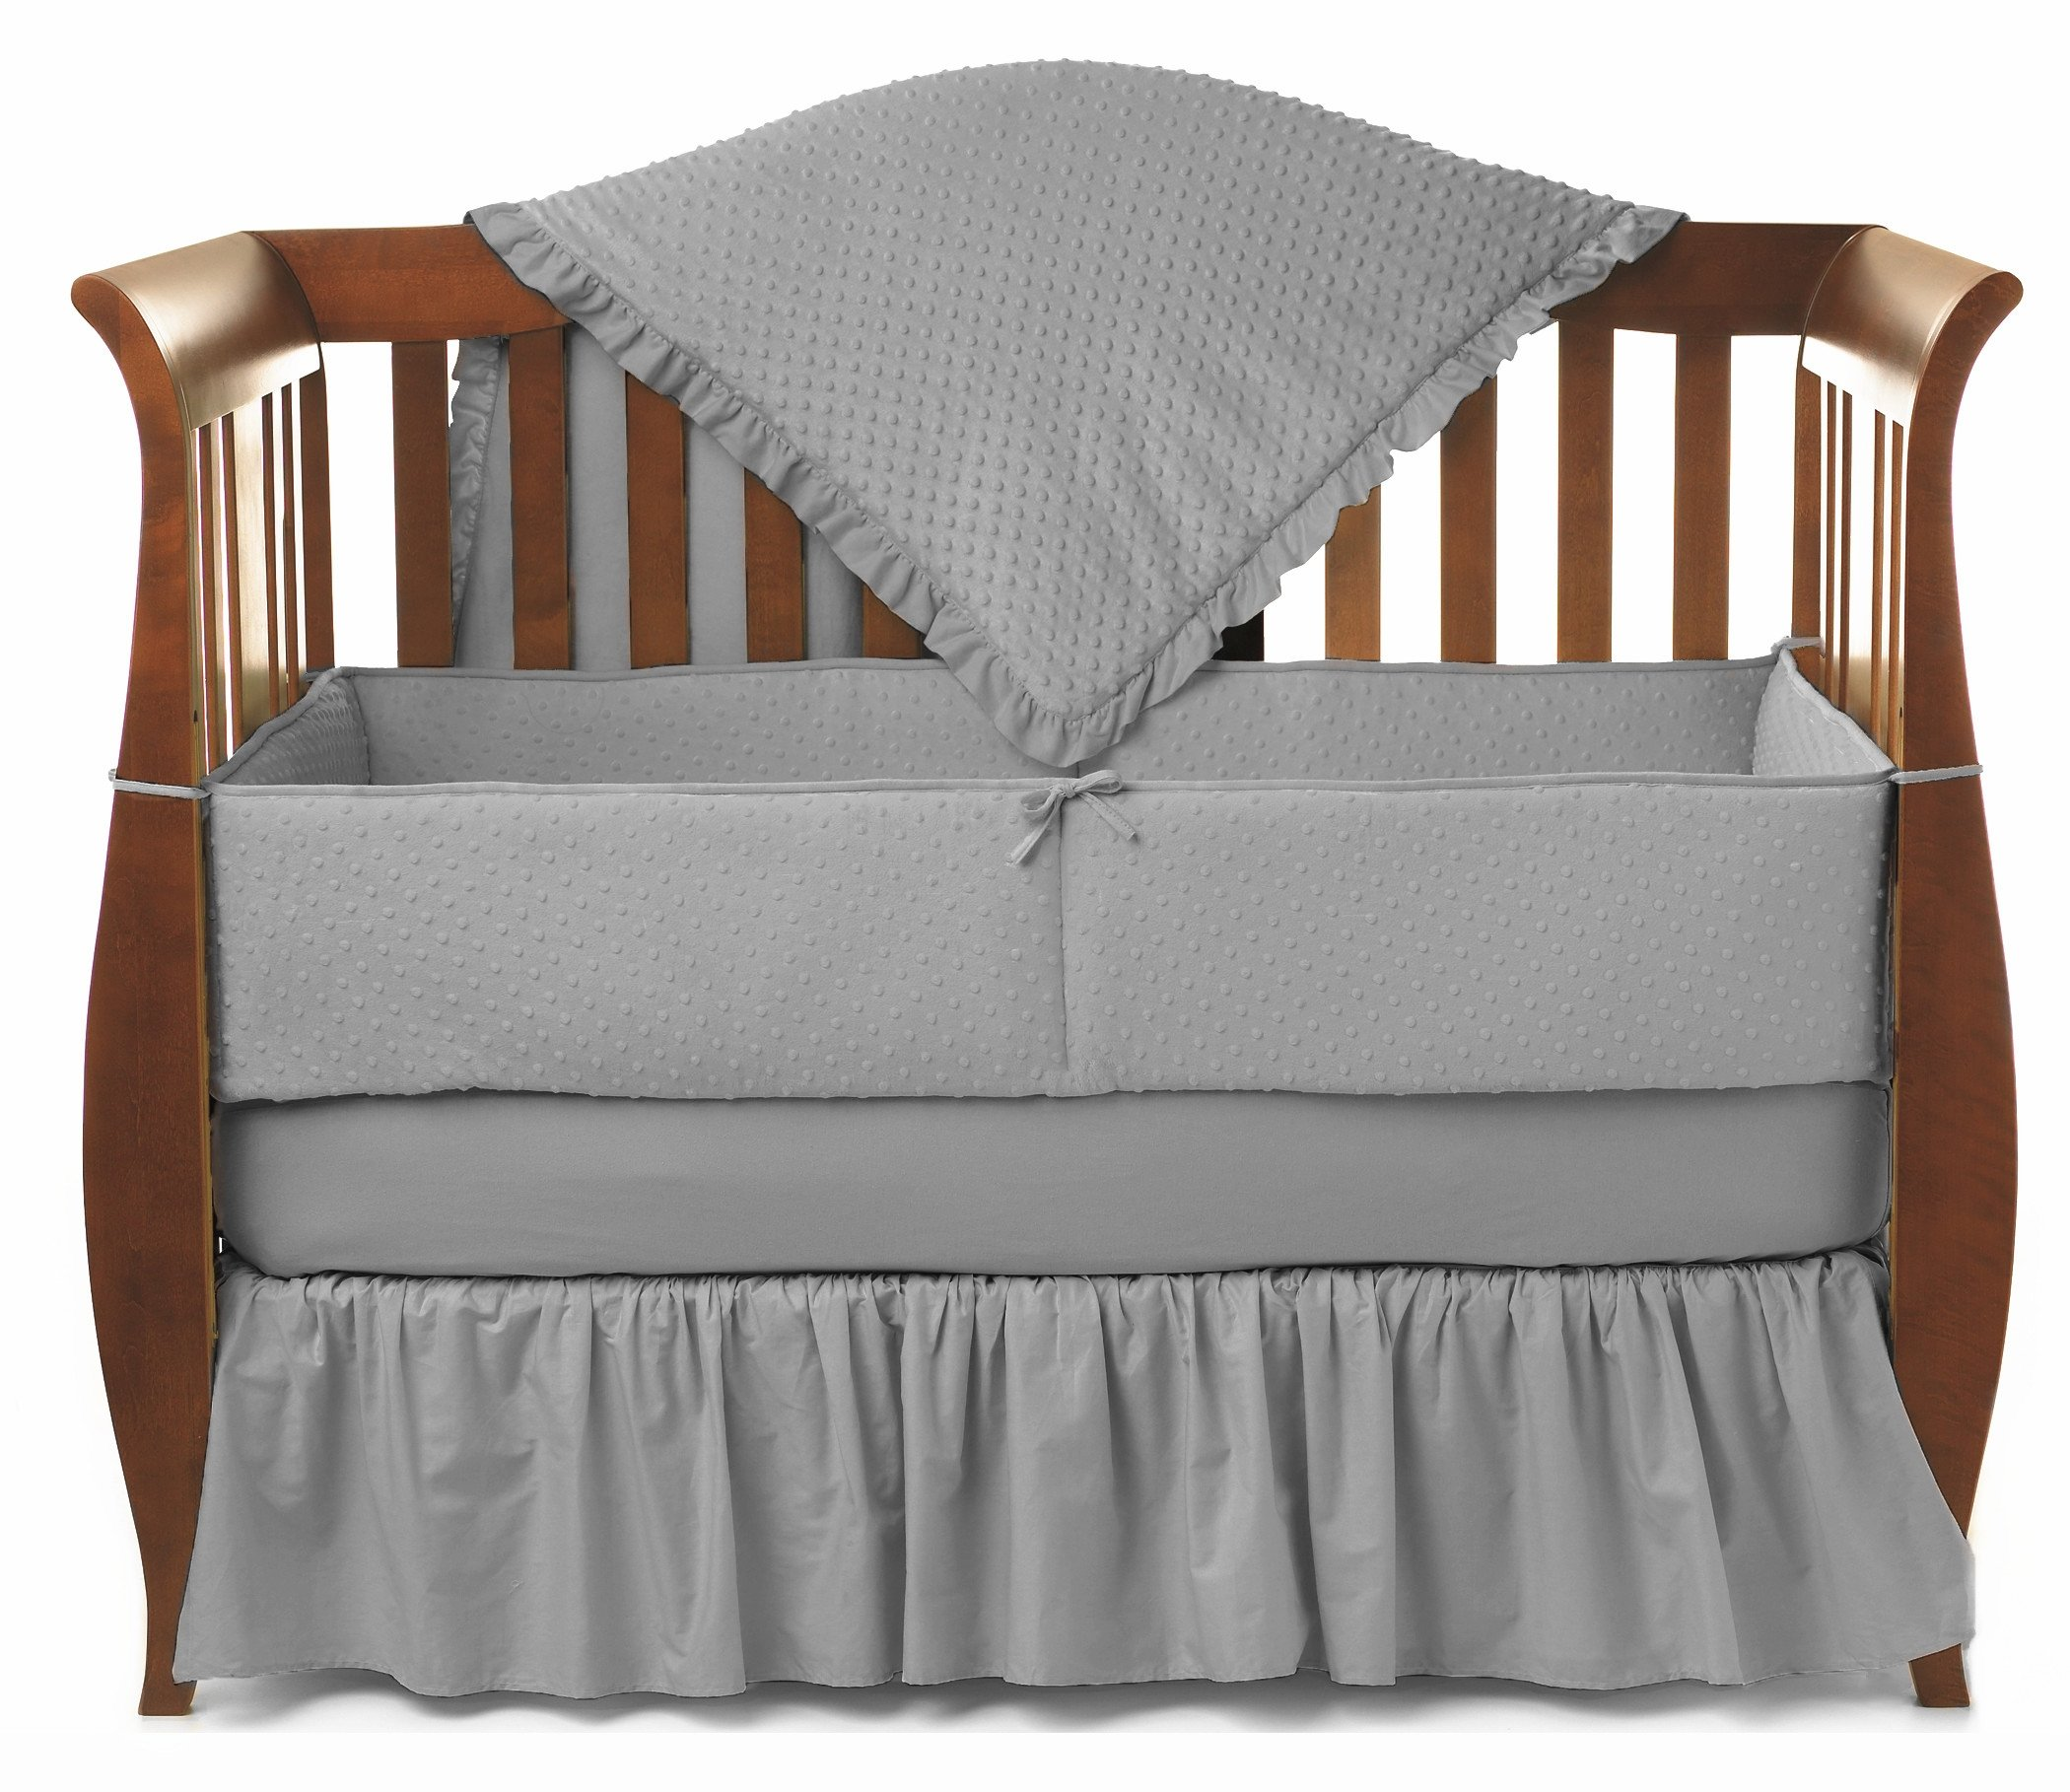 American Baby Company Heavenly Soft Minky Dot 4-Piece Crib Bedding Set, Gray